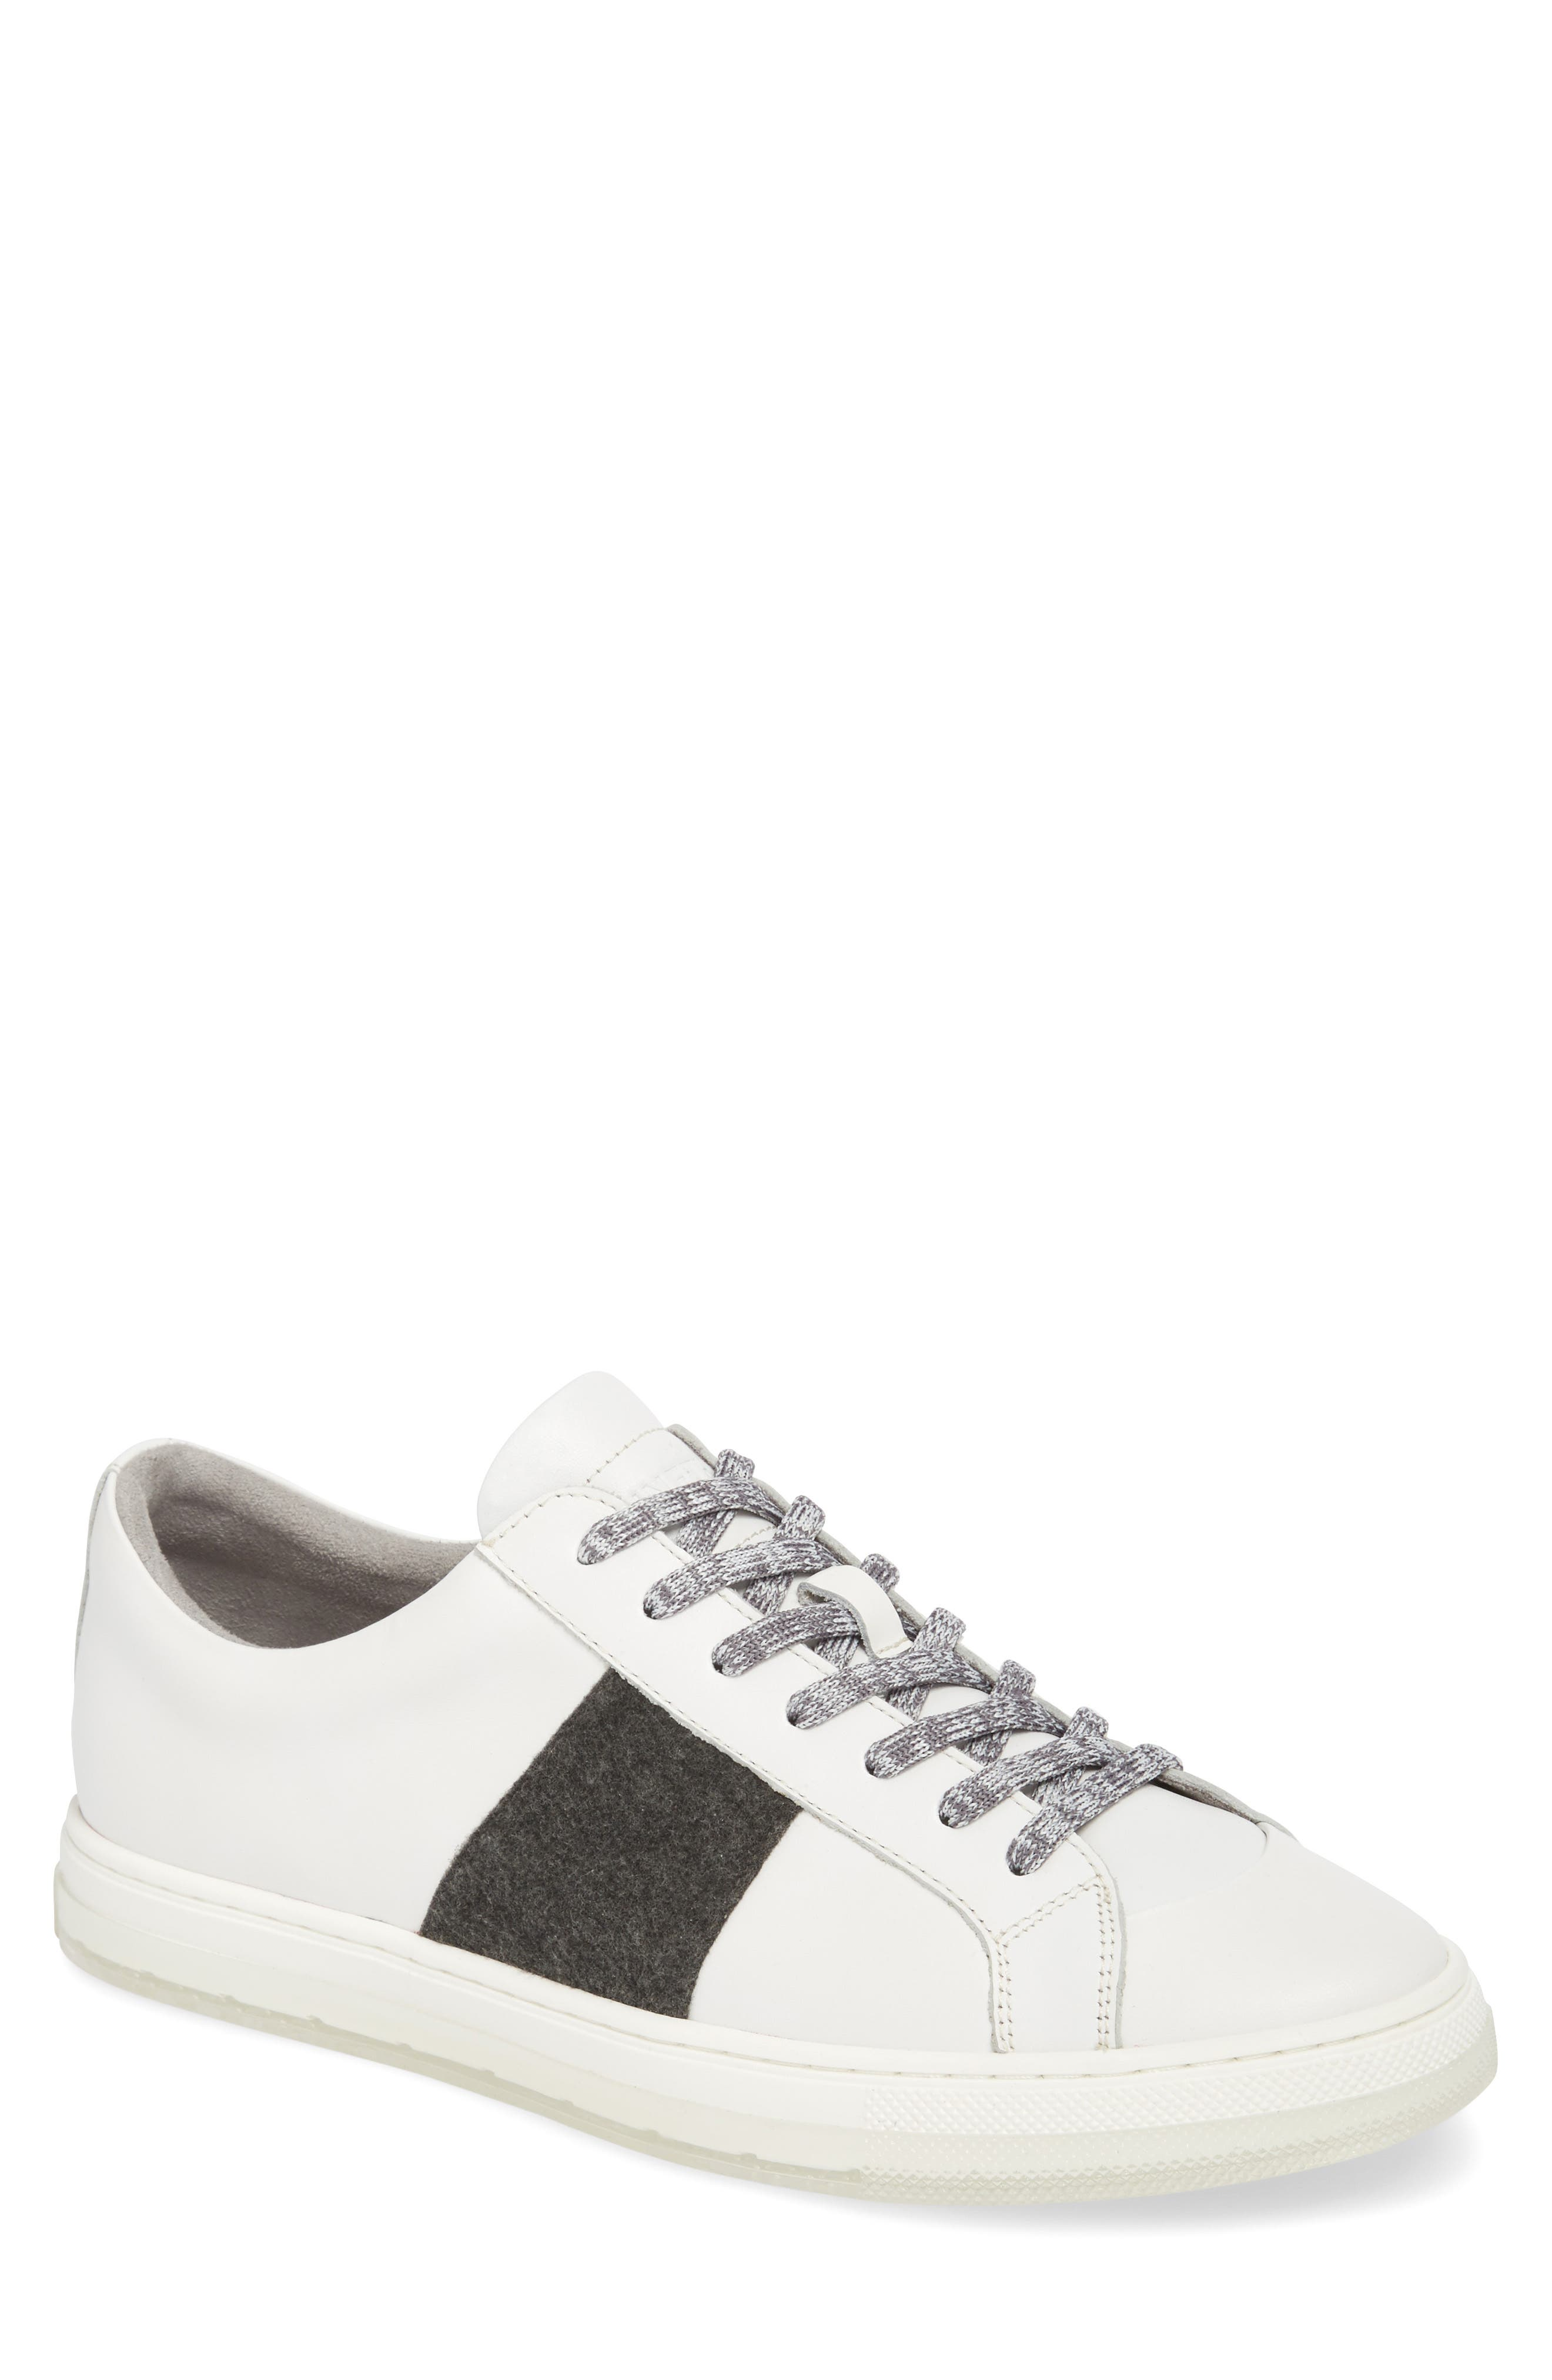 Colvin Sneaker,                             Main thumbnail 1, color,                             WHITE LEATHER